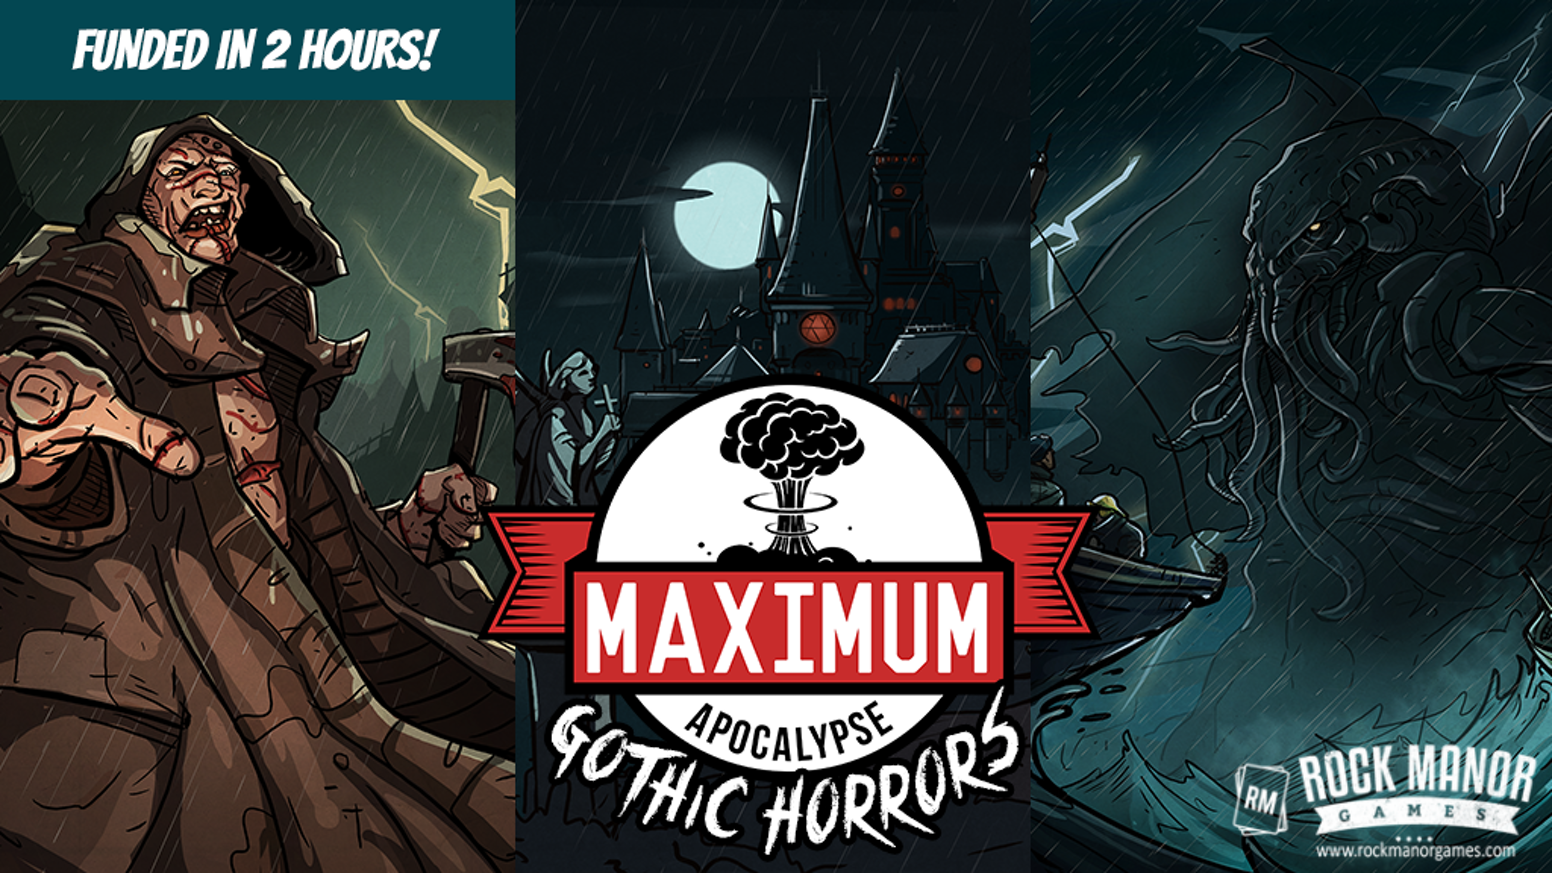 Survivors must explore, scavenge and kill to survive this deluxe expansion featuring New Character Classes and monsters!